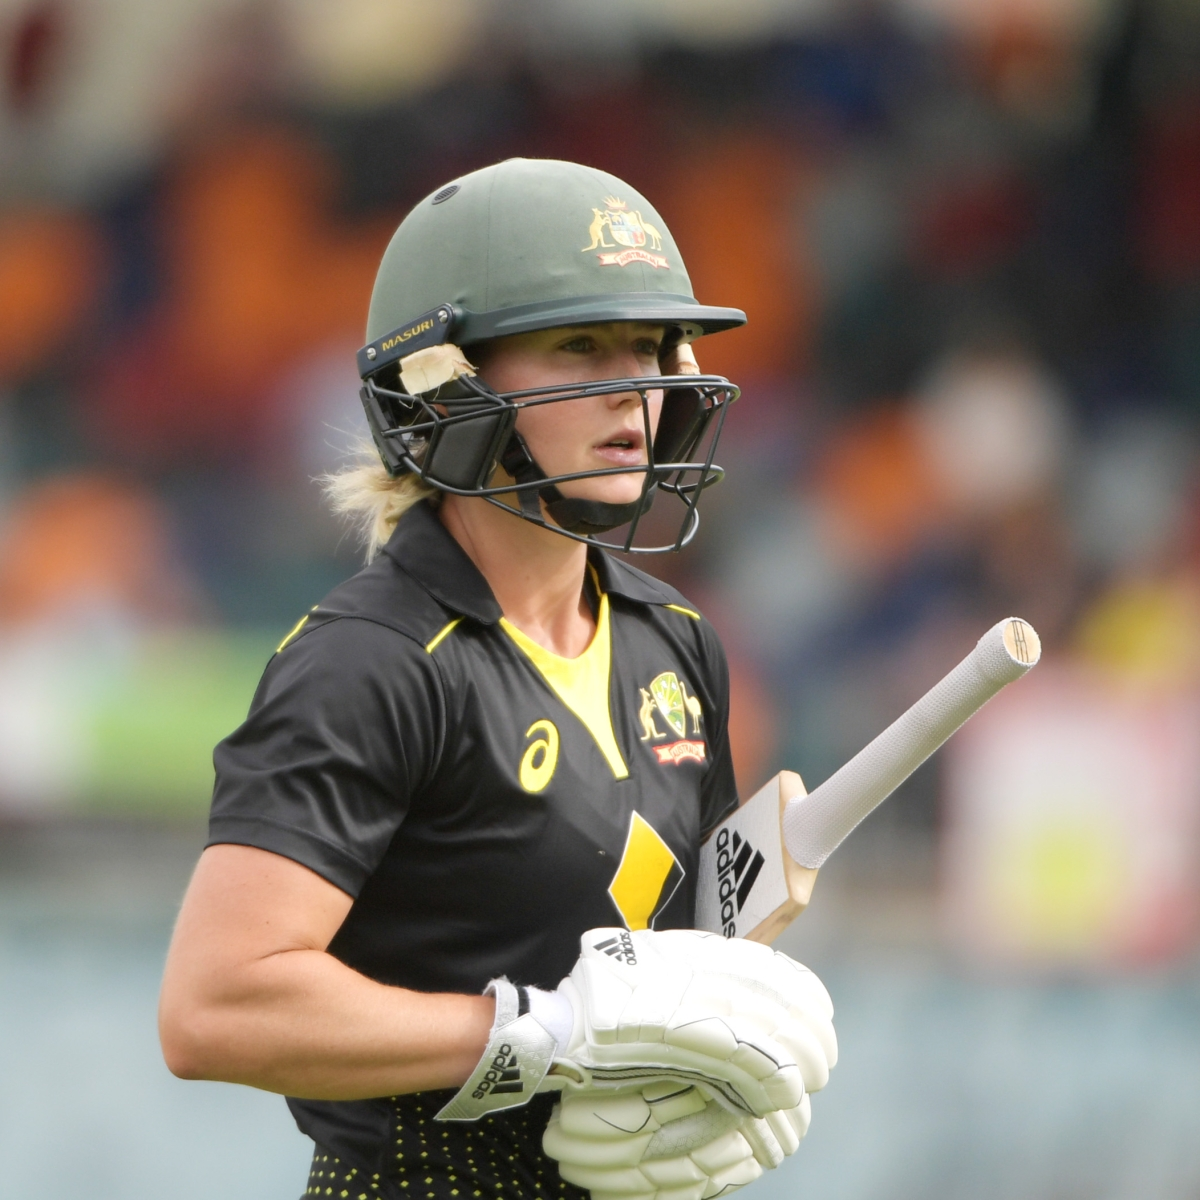 Tri-Nation T20 Series: Ellyse Perry heaps misery on India as Australia win by 4 wickets